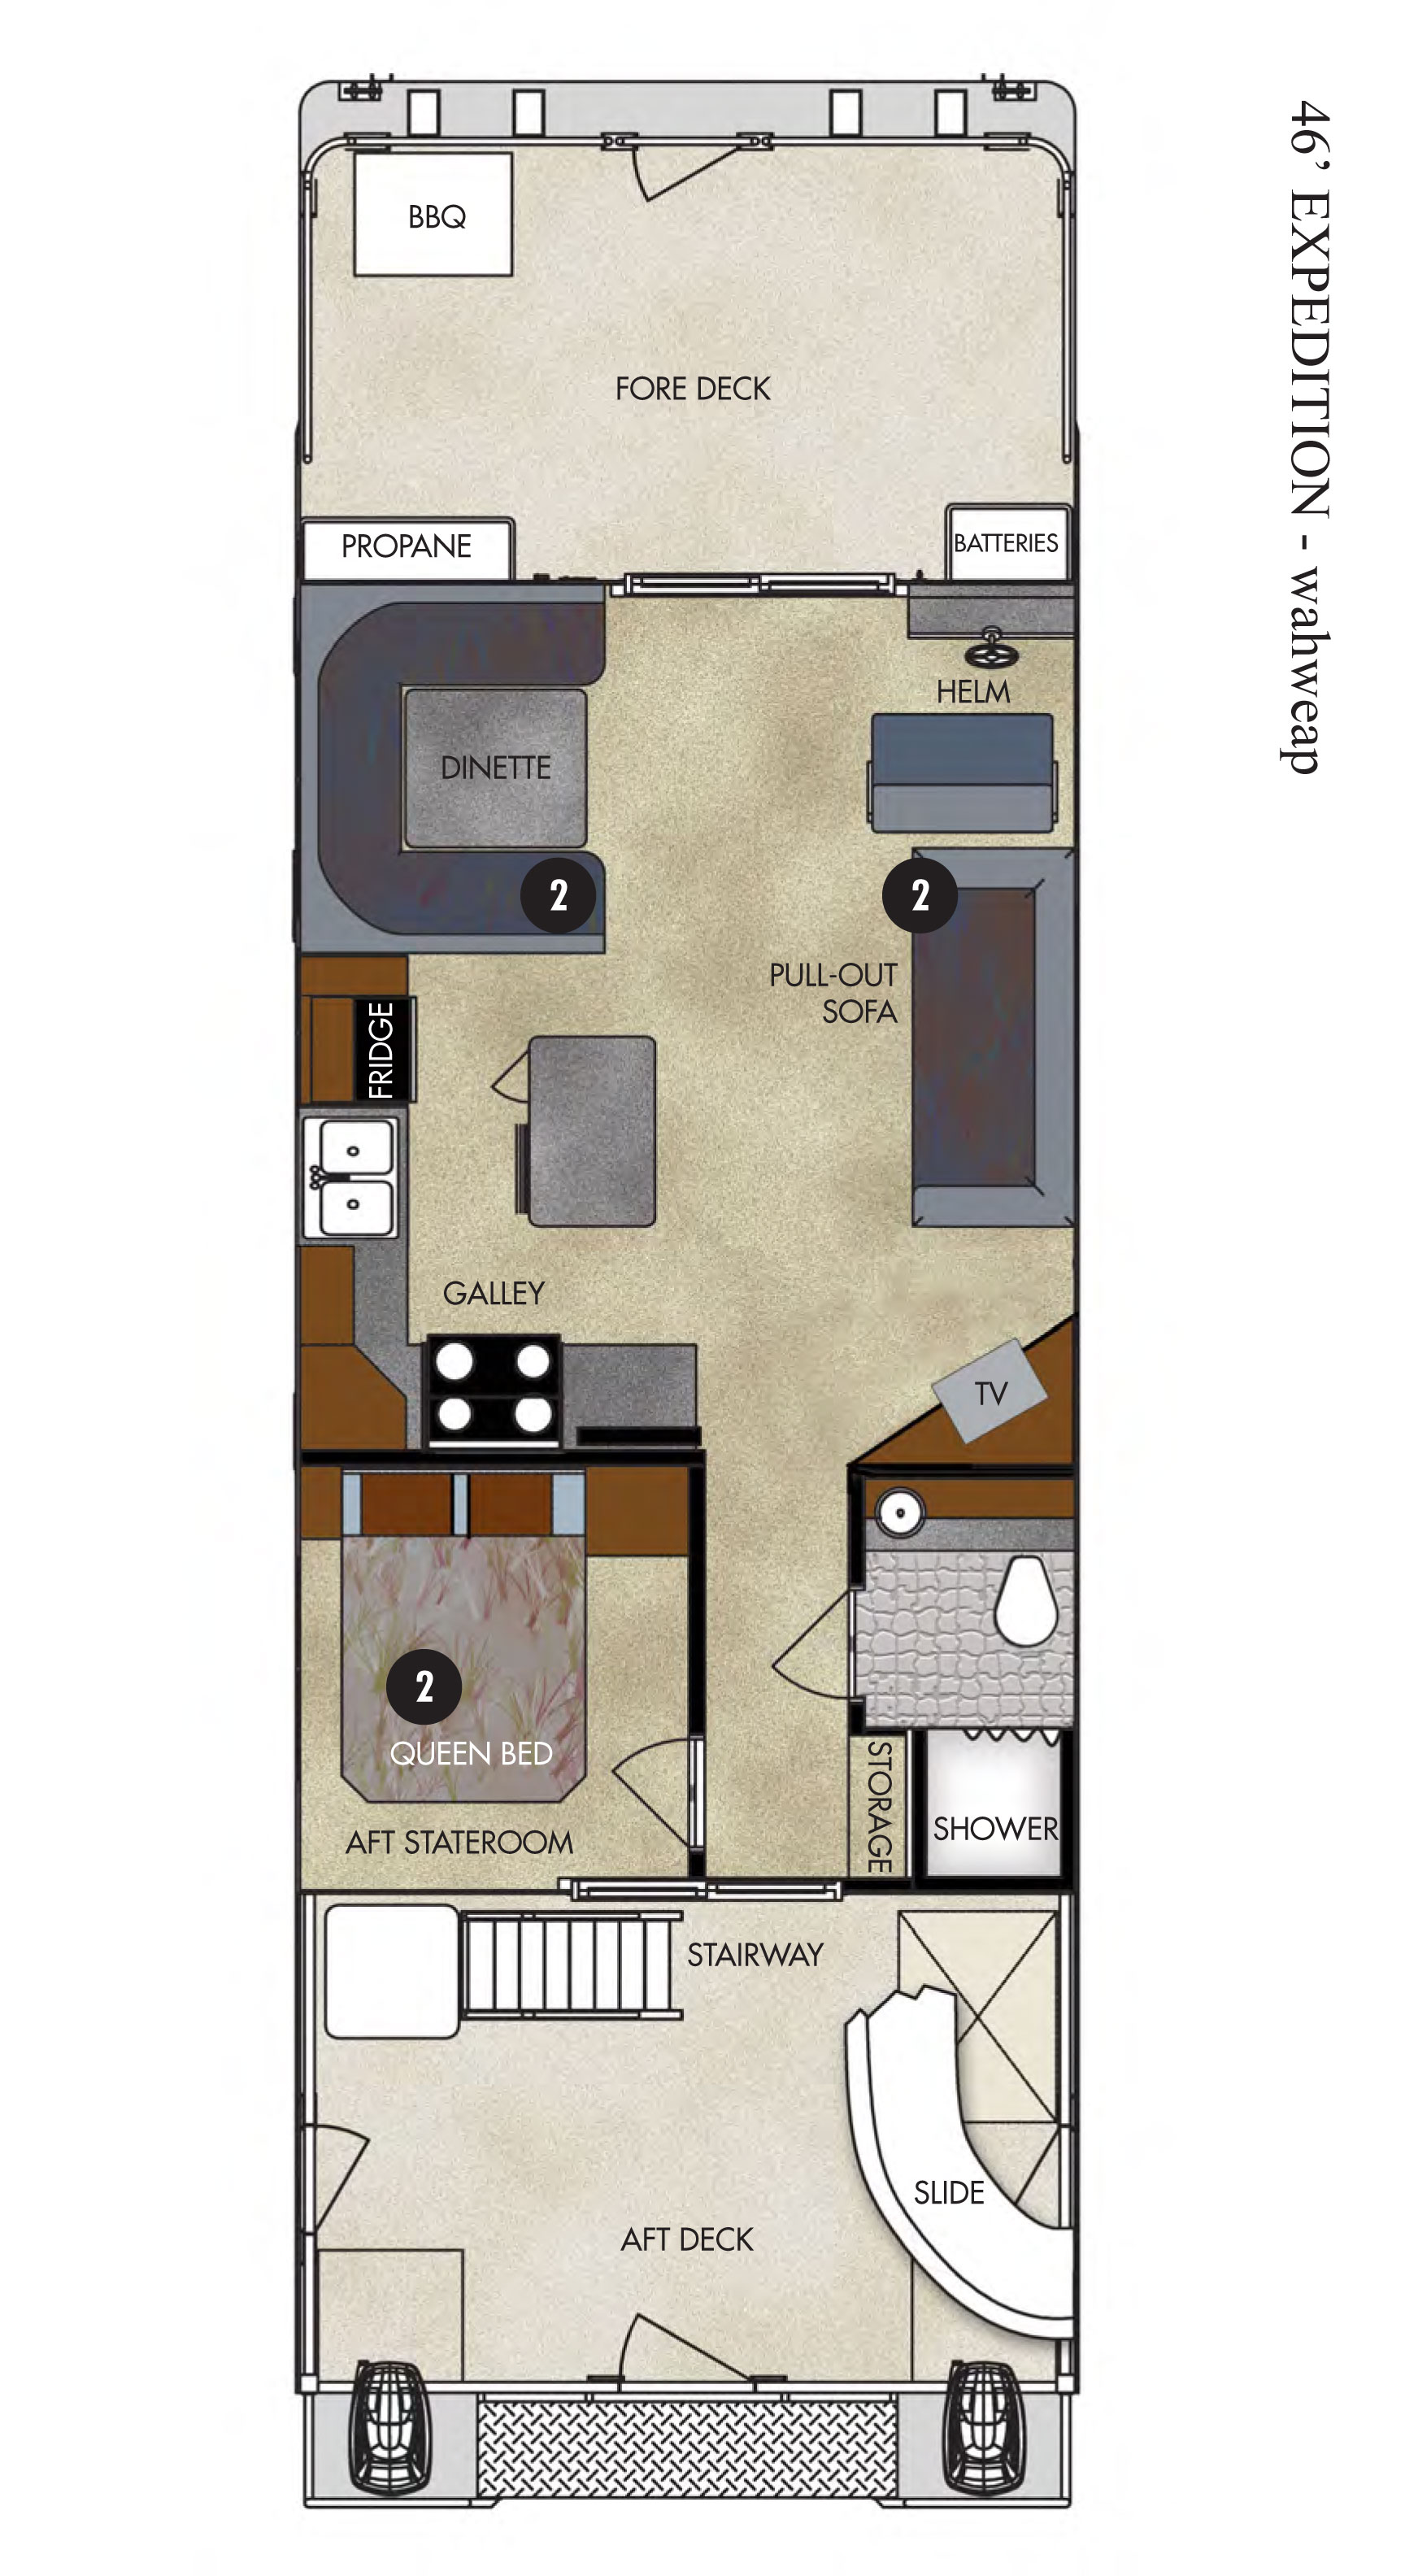 Wahweap Marina 46-ft Expedition Houseboat Floor Plan